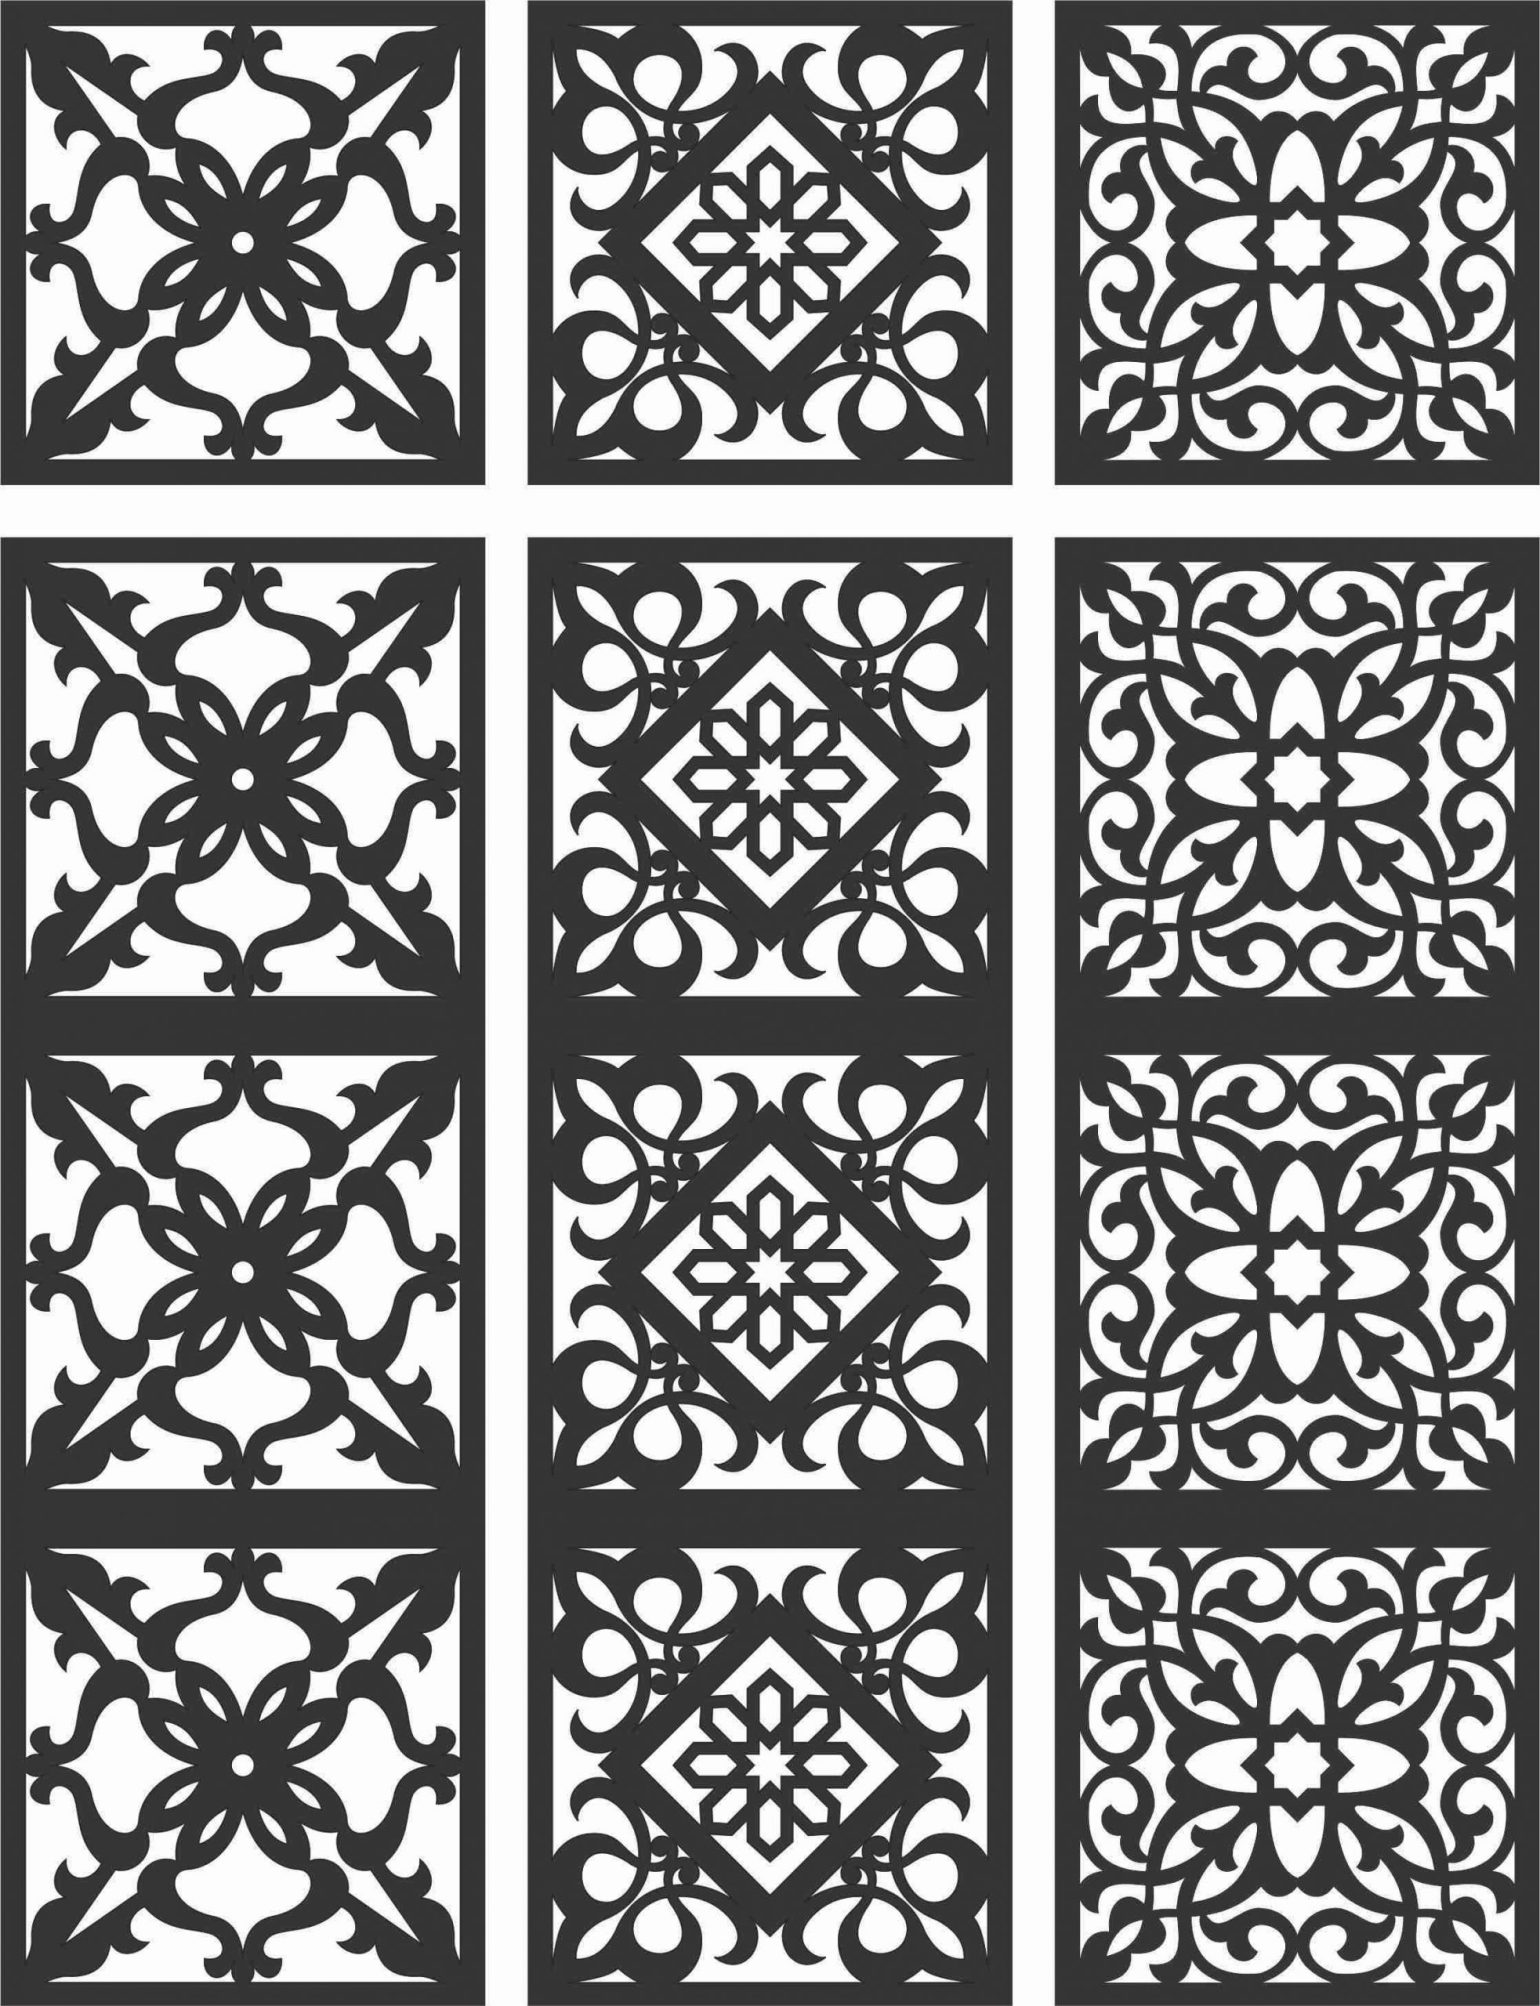 Floral Screen Patterns Design 111 Free DXF File